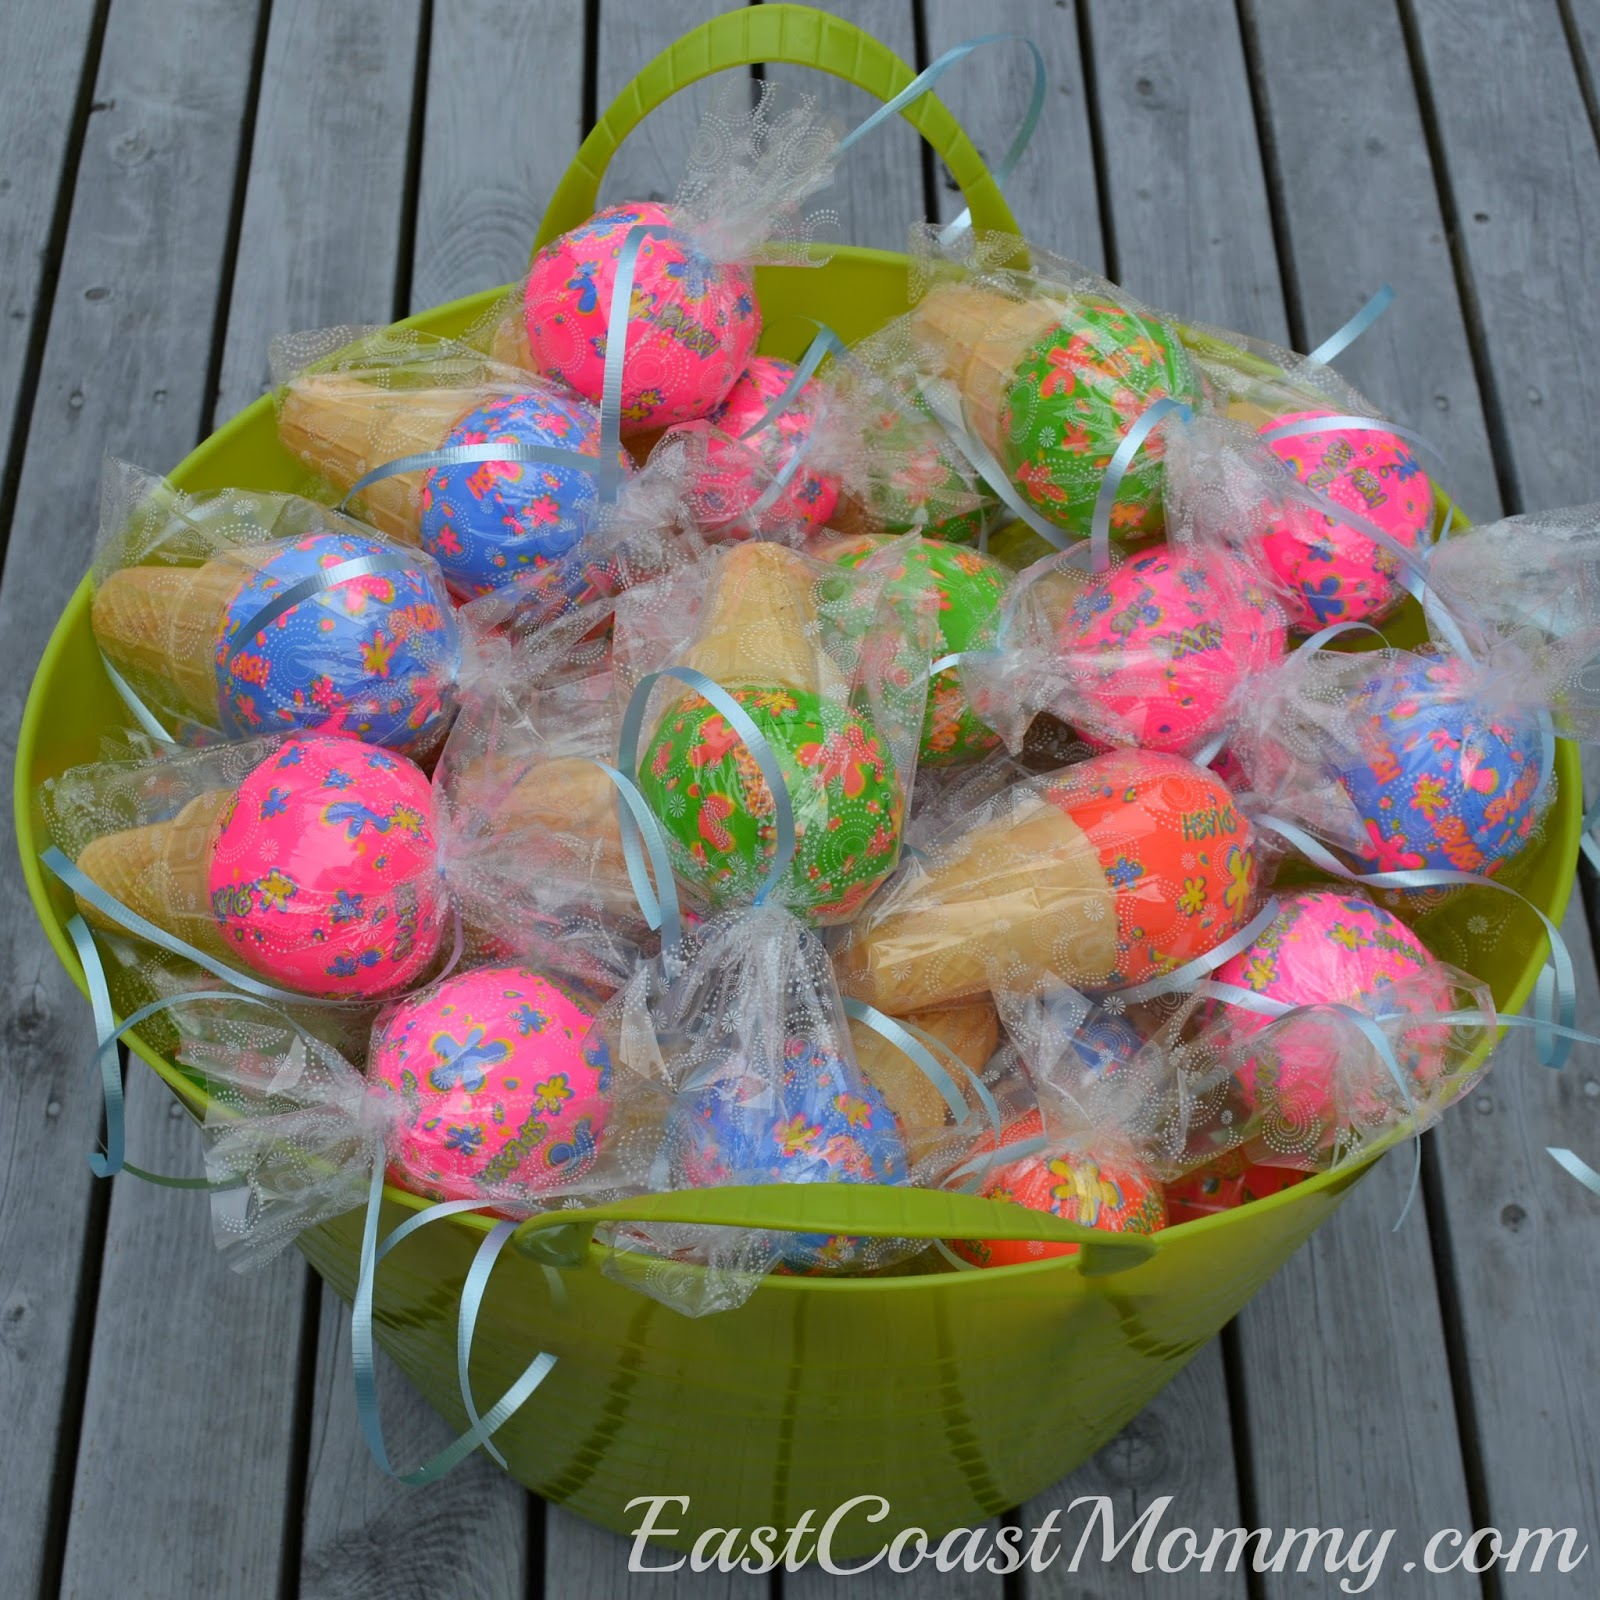 Pool Party Gift Bag Ideas find this pin and more on birthday party cute loot bag idea What Do You Think Of These Pool Party Favor Ideas Do You Have A Favorite I Quite Like The Cones With The Splash Balls